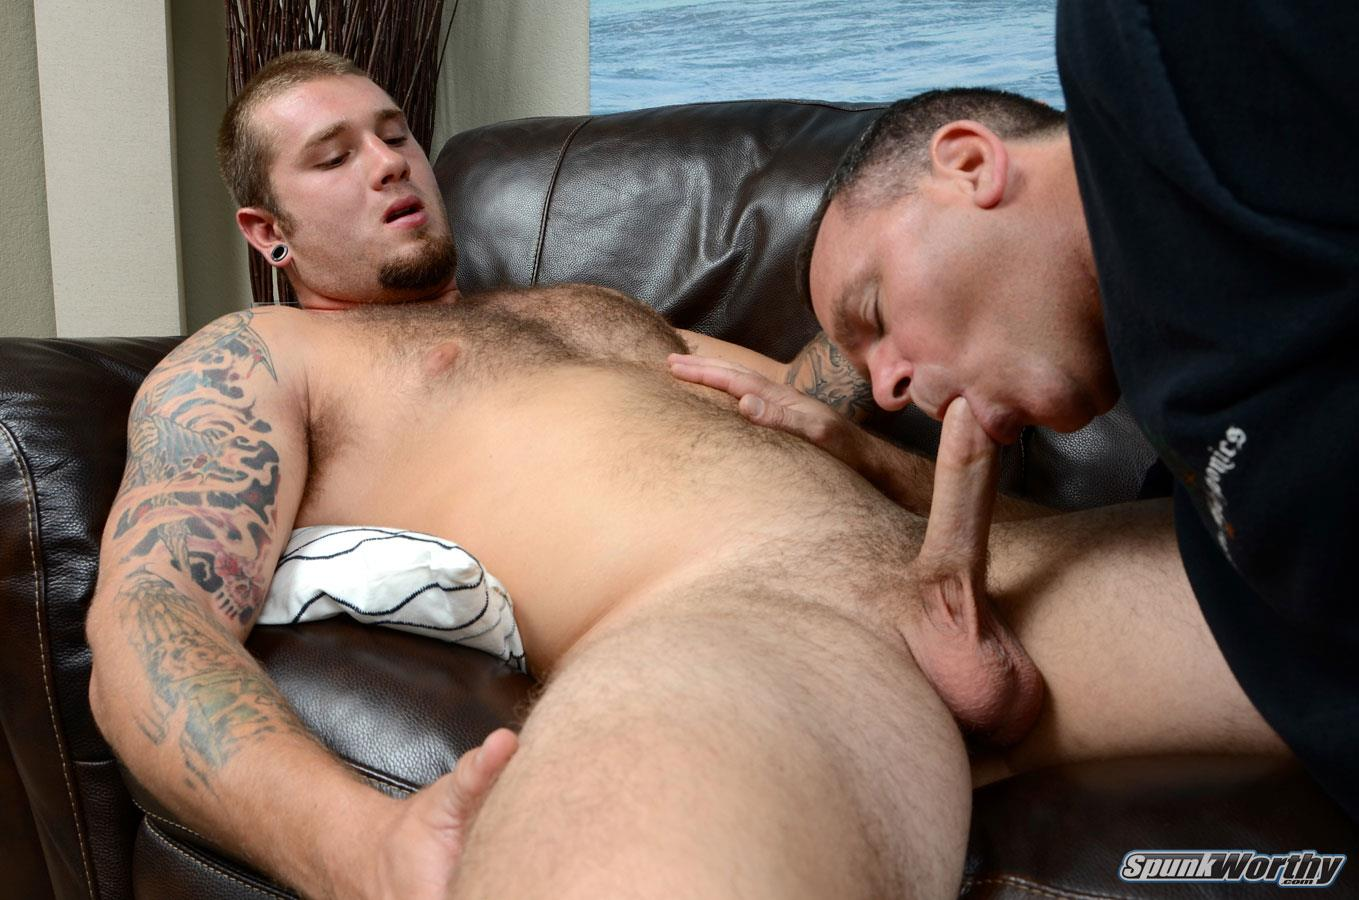 SpunkWorthy-Preston-Straight-Guy-Getting-His-First-Blowjob-Hairy-Cub-Amateur-Gay-Porn-15 Straight Hairy Young Muscle Cub Gets His First Blowjob From Another Guy